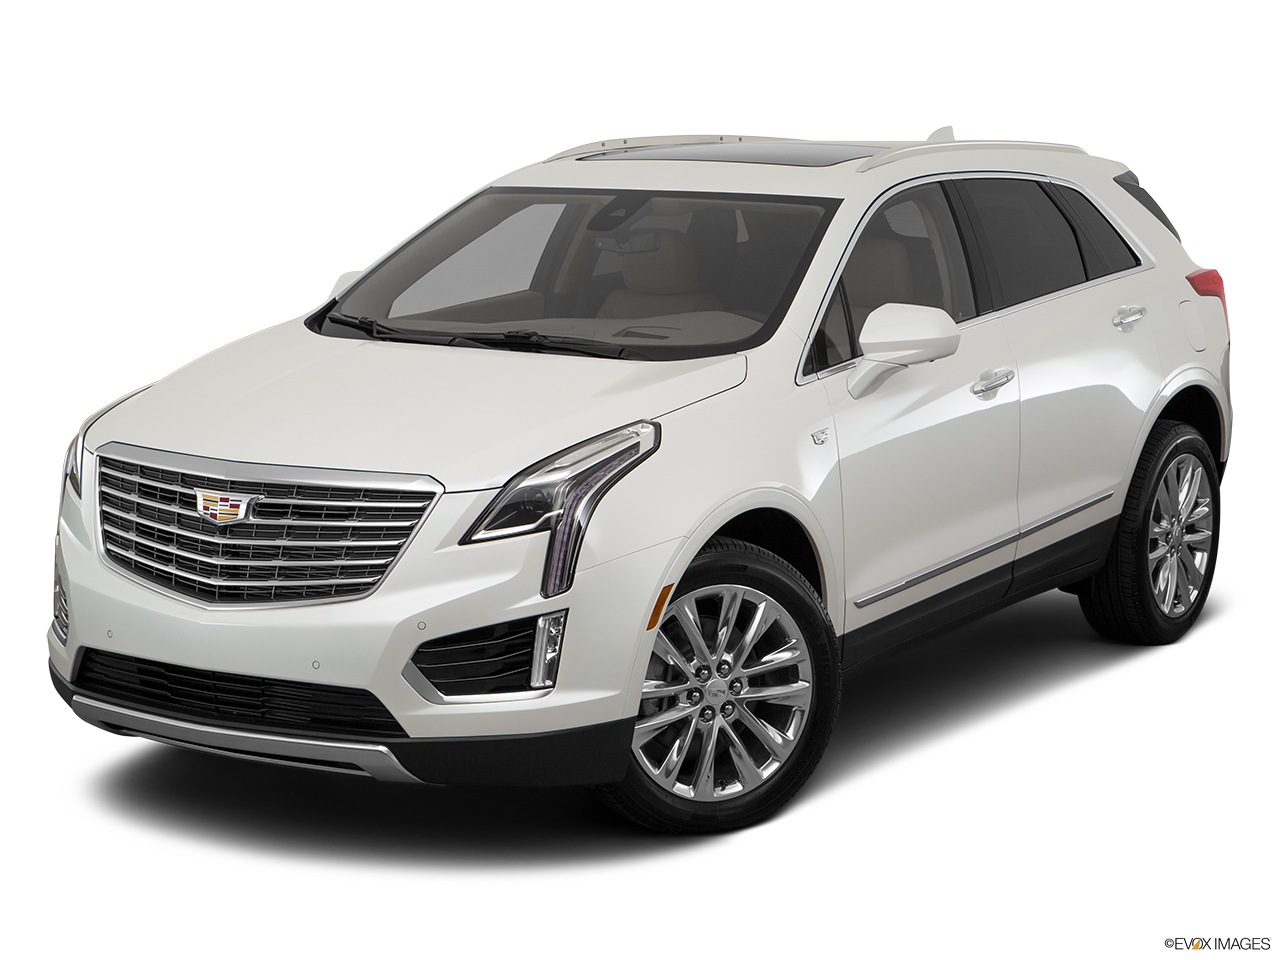 car features list for cadillac xt5 crossover 2017 3 6l awd platinum kuwait yallamotor. Black Bedroom Furniture Sets. Home Design Ideas